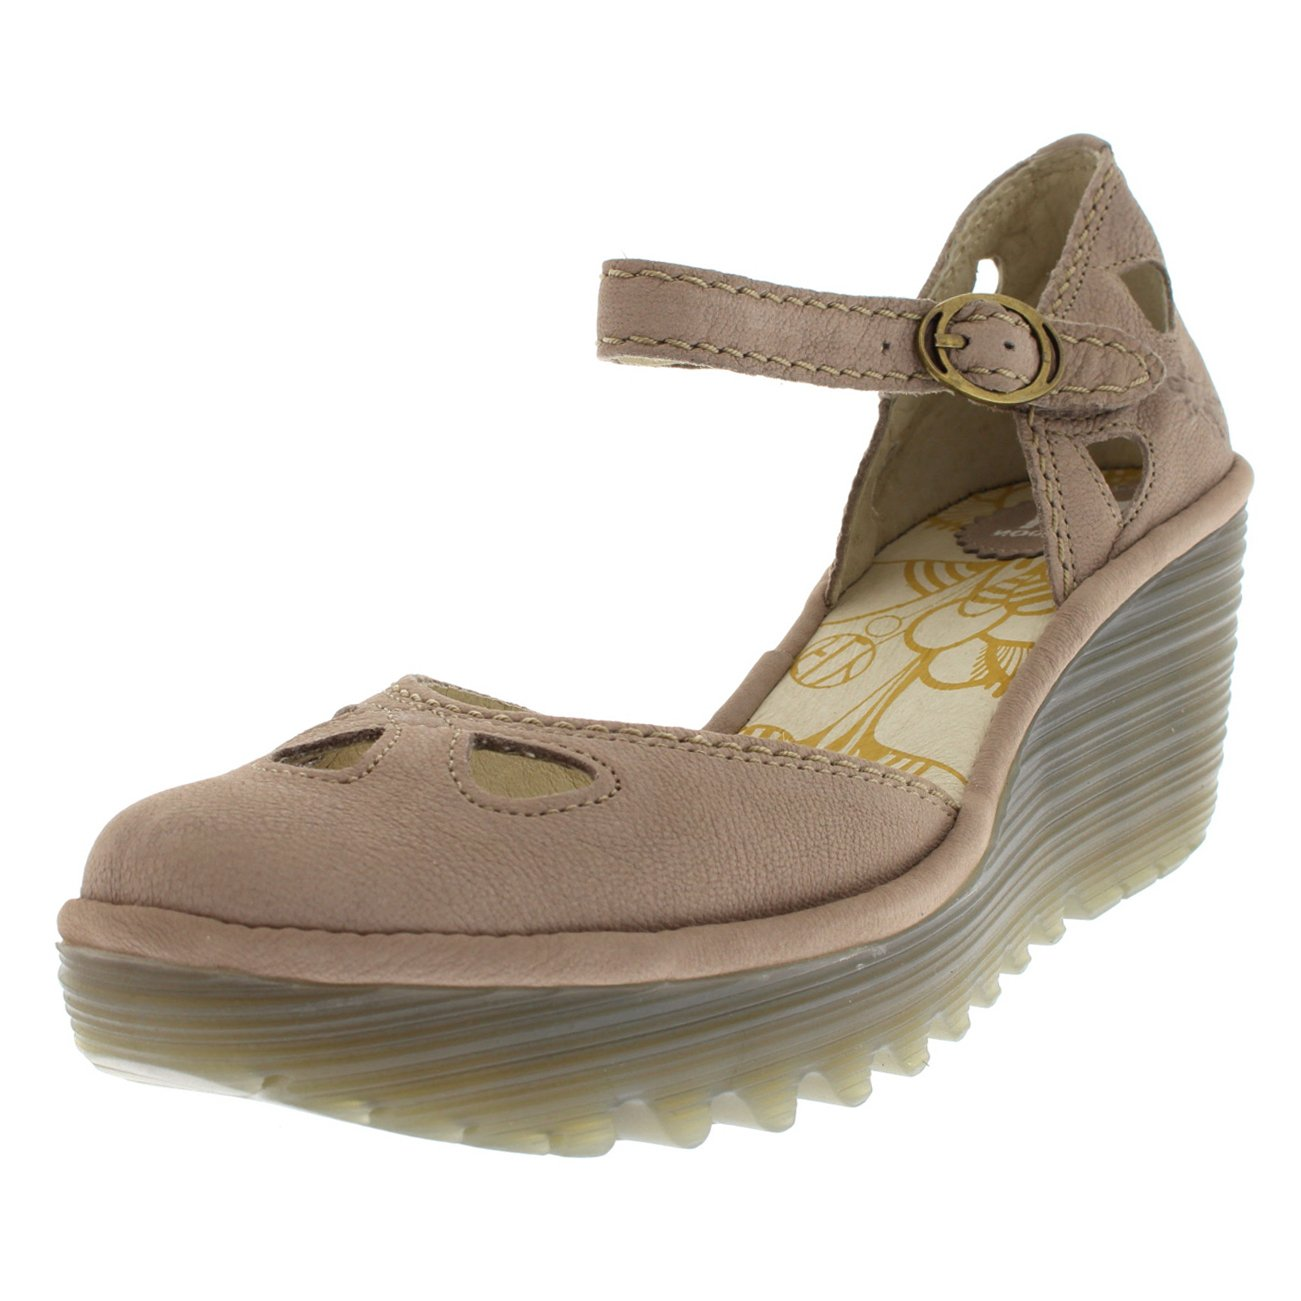 FLY London Womens Yuna Cupido Leather Sandals Summer Shoes Wedge Heel - Concrete - 6